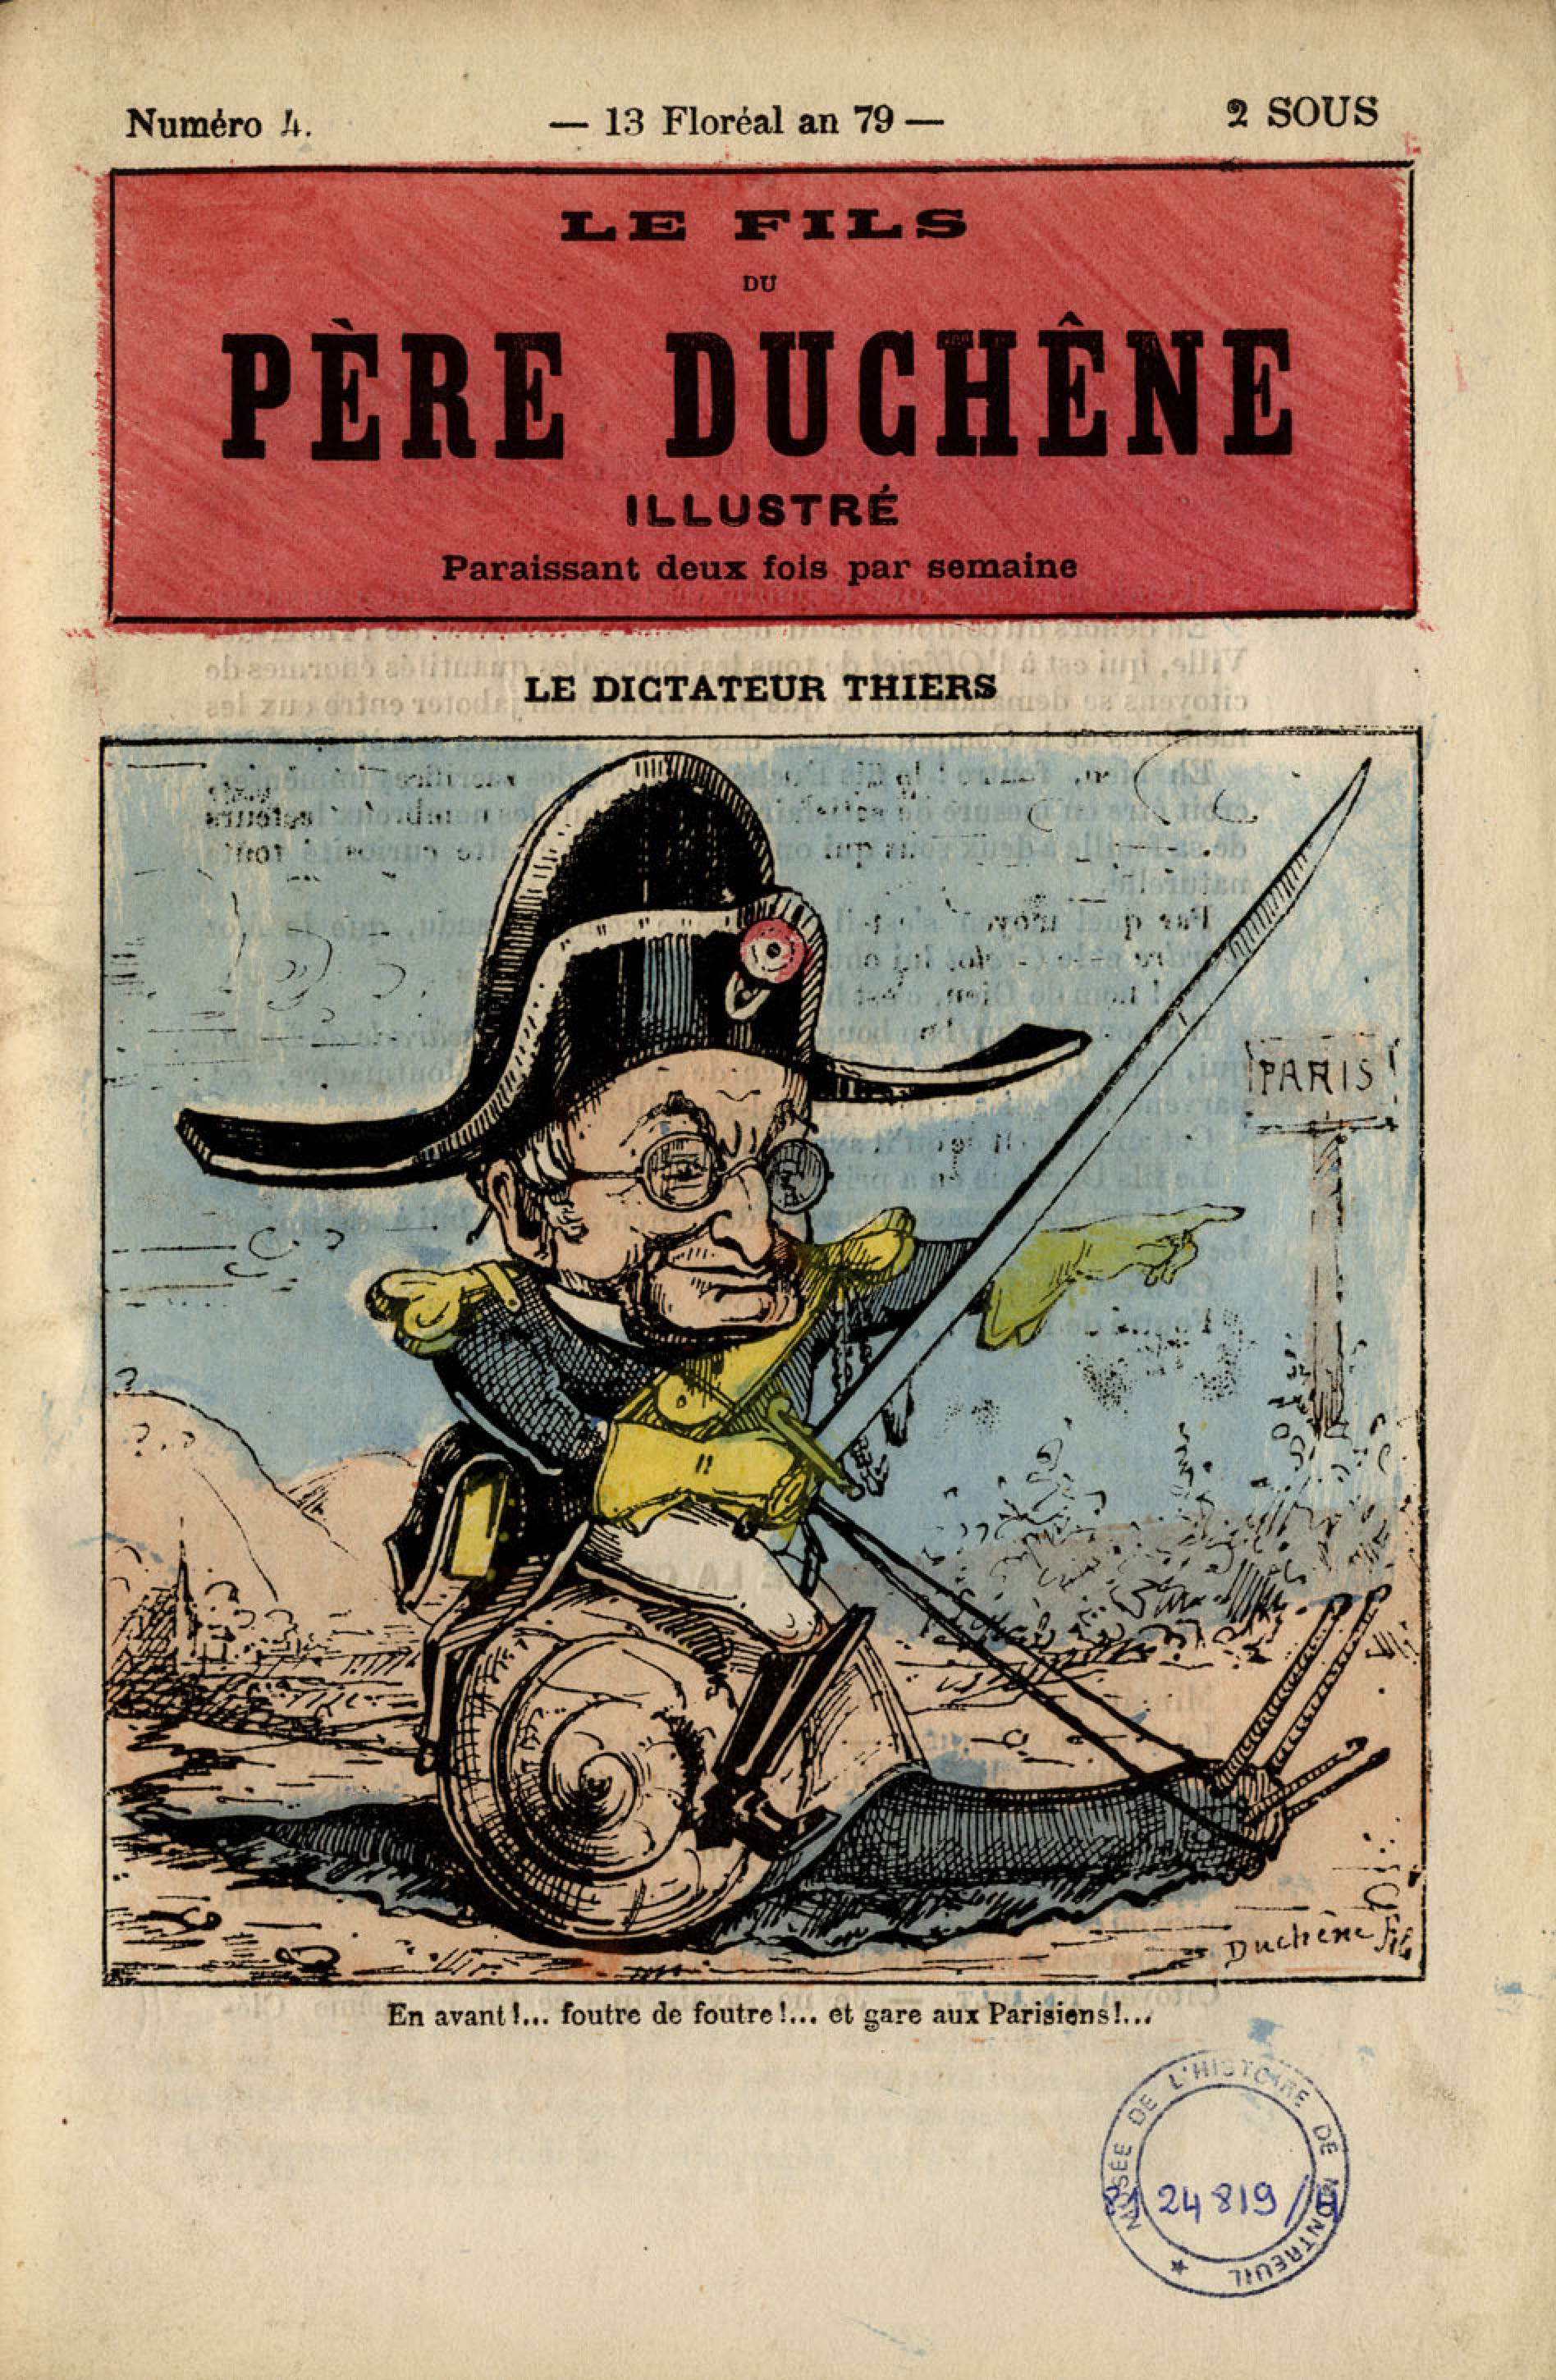 A caricature ridiculing Thiers in a newspaper of the Paris Commune in Le Pere Duchene illustre PereDuchesneIllustre4 1 0.png